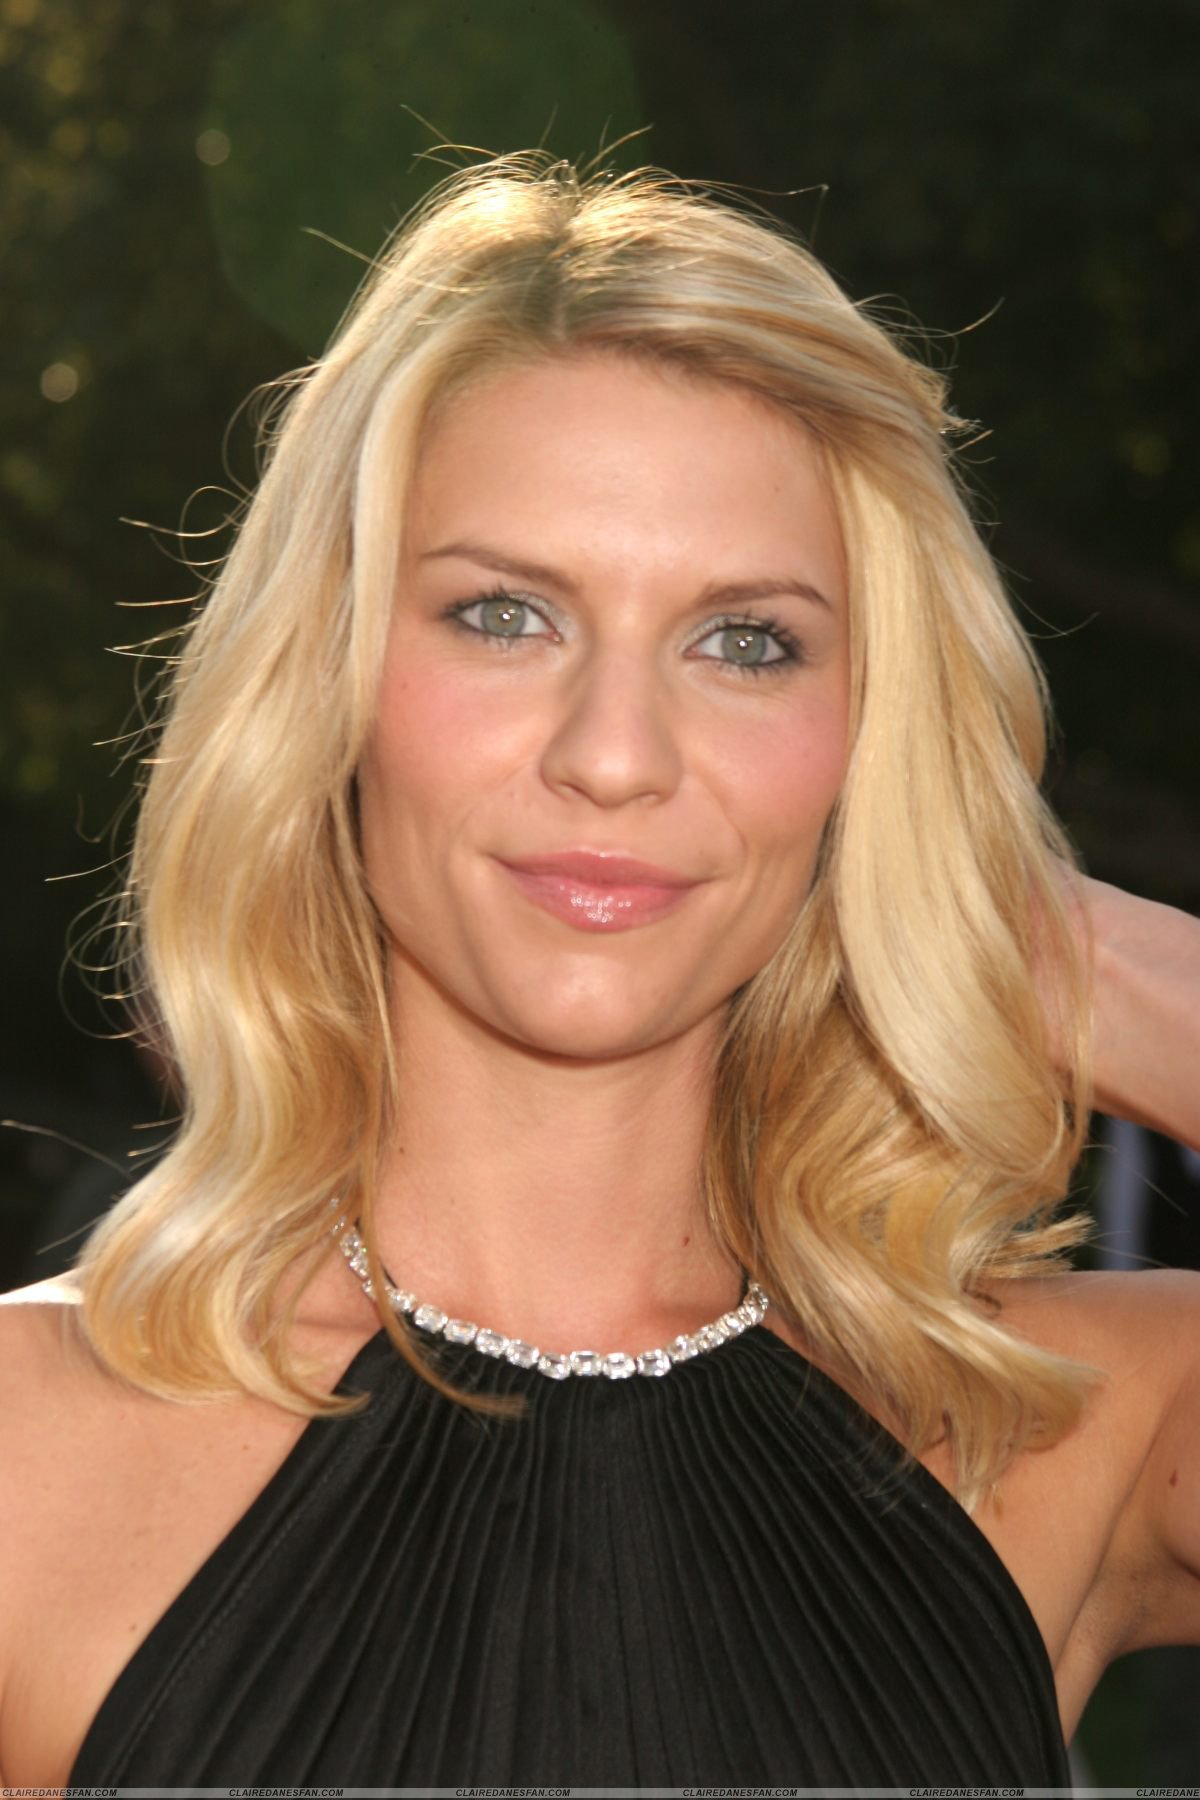 Claire Danes Wallpapers High Quality   Download Free Claire Danes